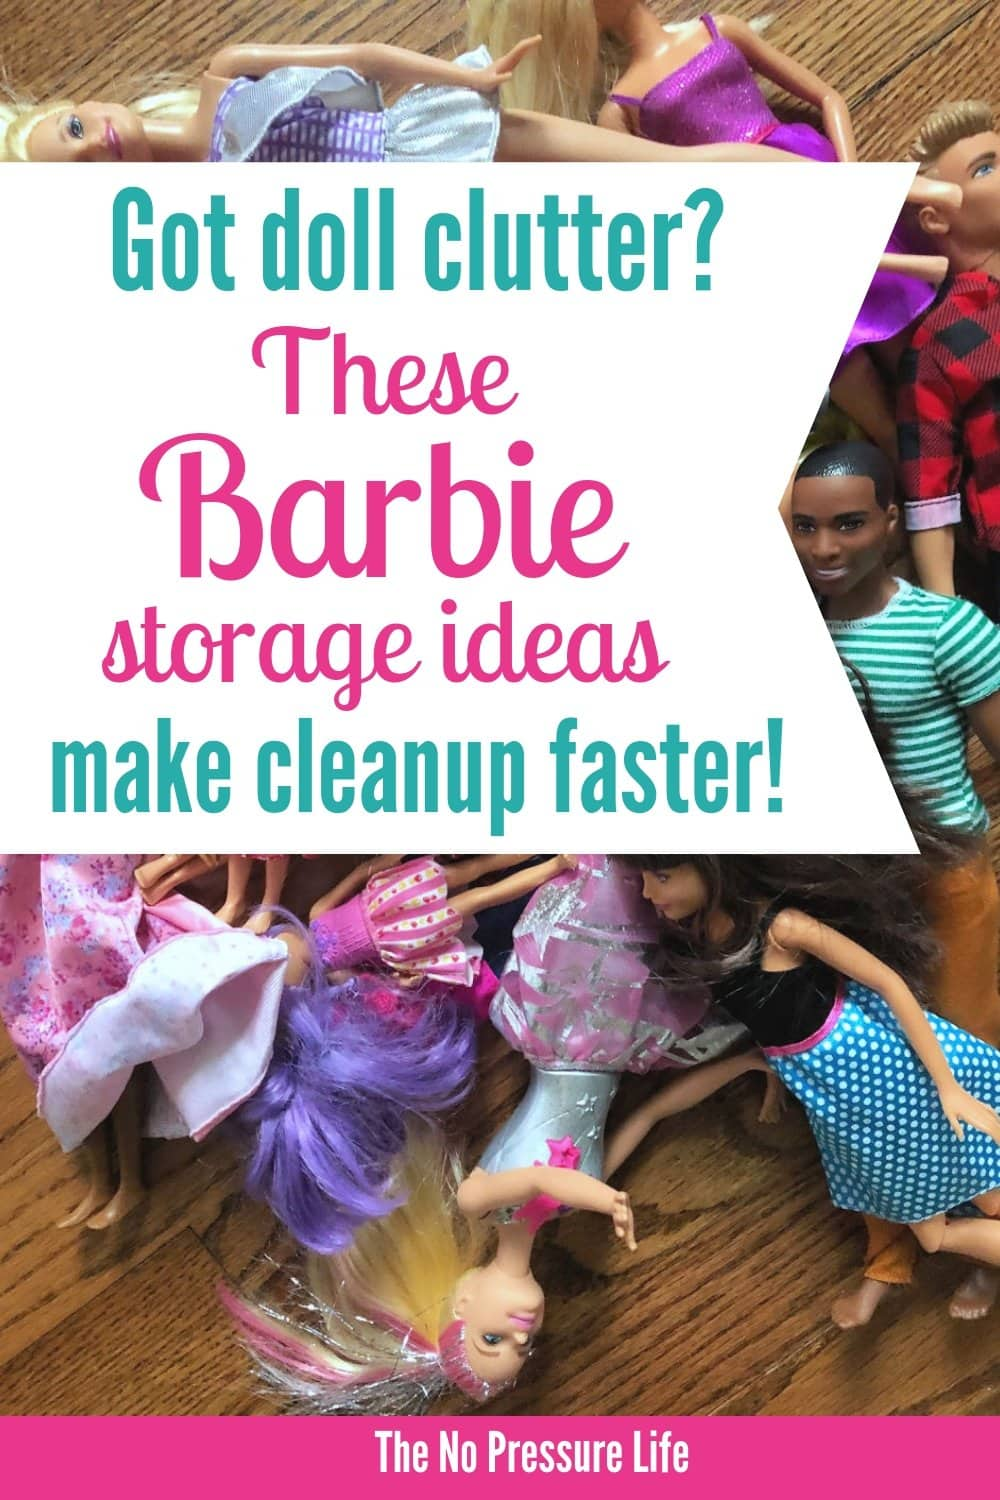 Barbie storage ideas to organize Barbie dolls, shoes, clothes, and accessories